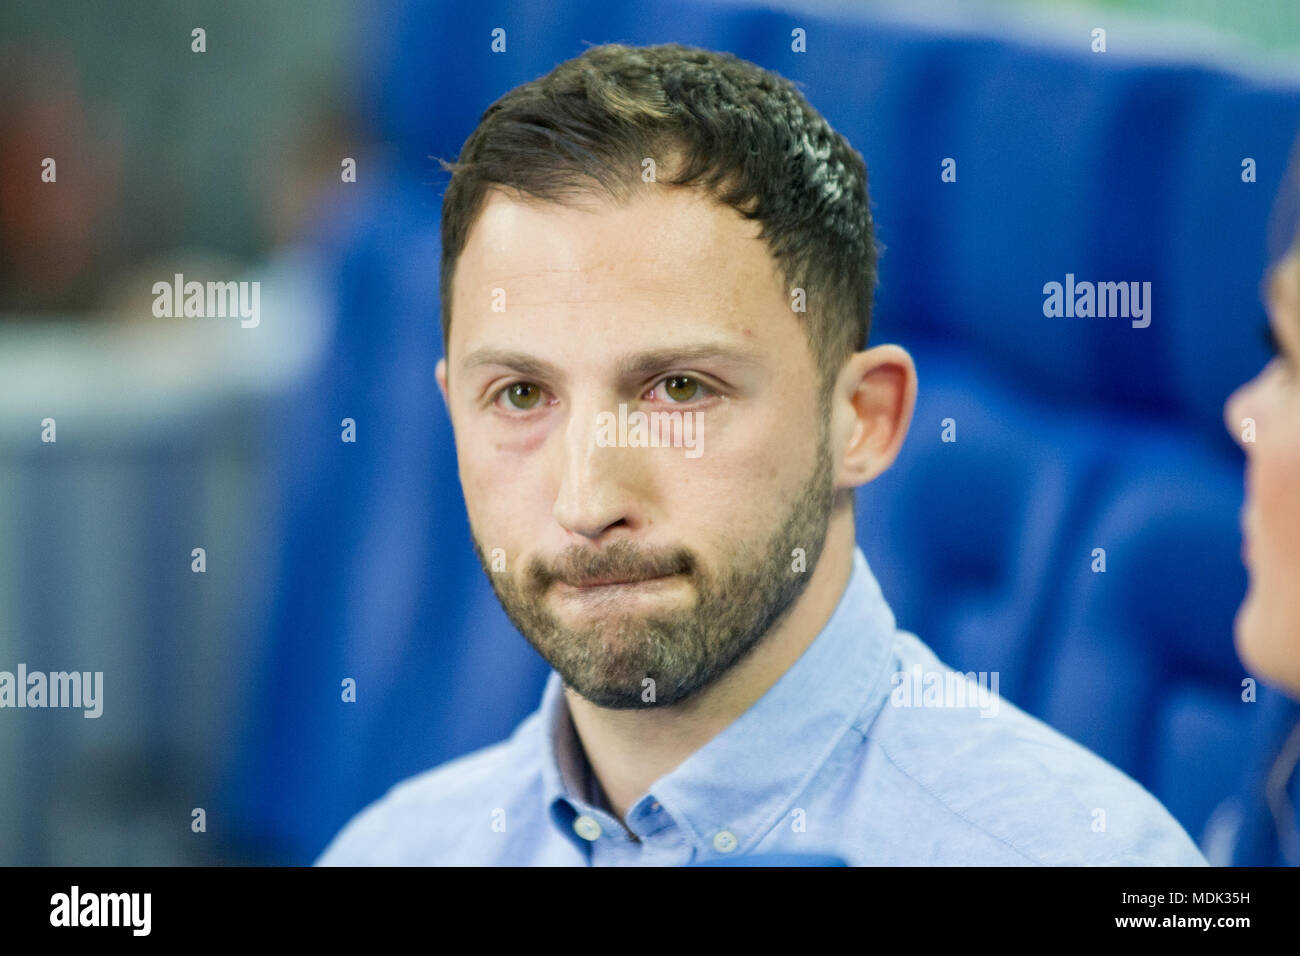 Gelsenkirchen, Deutschland. 19th Apr, 2018. Domenico TEDESCO (coach, GE) in interview, TV, television, half-length portrait, frustrated, frustrated, frustrated, disappointed, showered, disappointed, disappointment, sad, football, DFB Pokal, semi-final, FC Schalke 04 (GE) - Frankfurt (F) 0: 1 on 18.04.2018 in Gelsenkirchen/Germany. | usage worldwide Credit: dpa/Alamy Live News - Stock Image